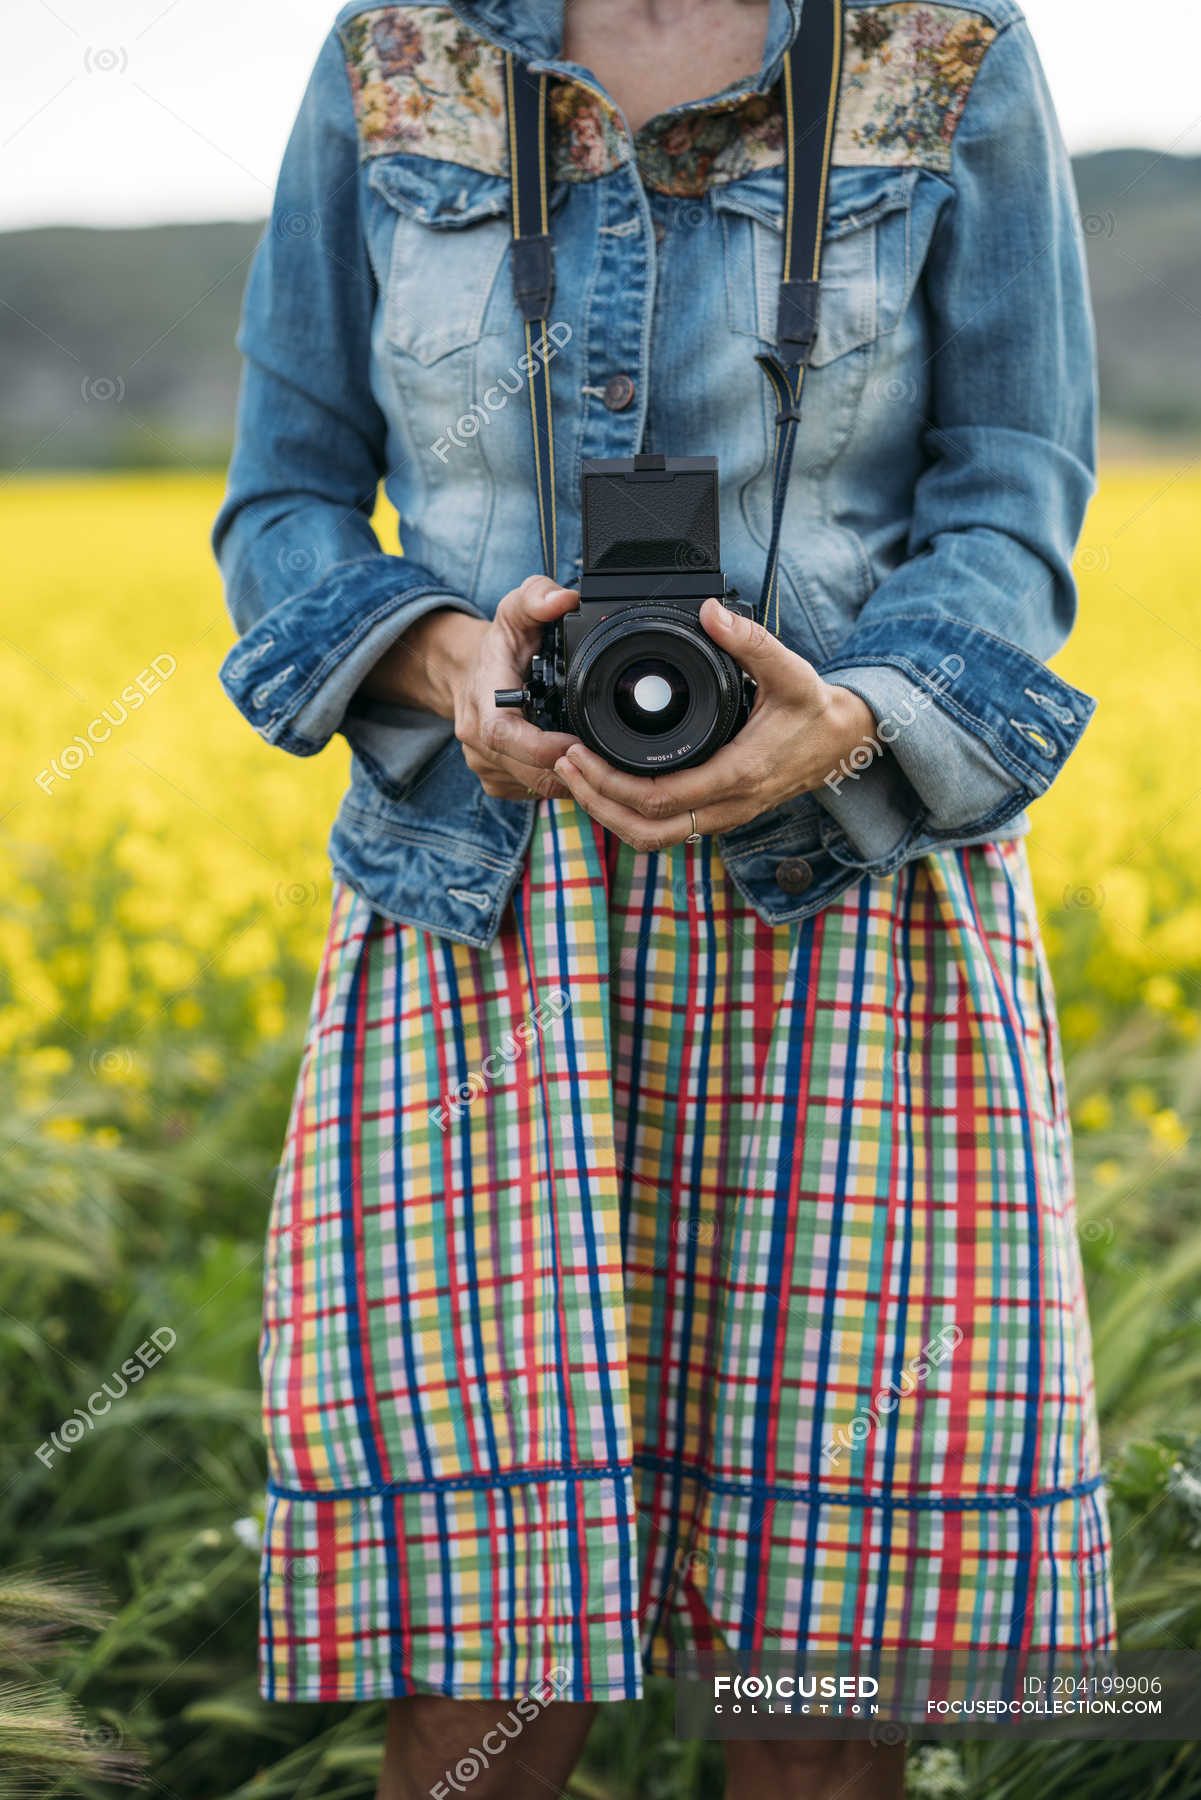 3e6be25b9d9 Woman in colored dress and denim jacket holding photo device in nature —  Stock photos